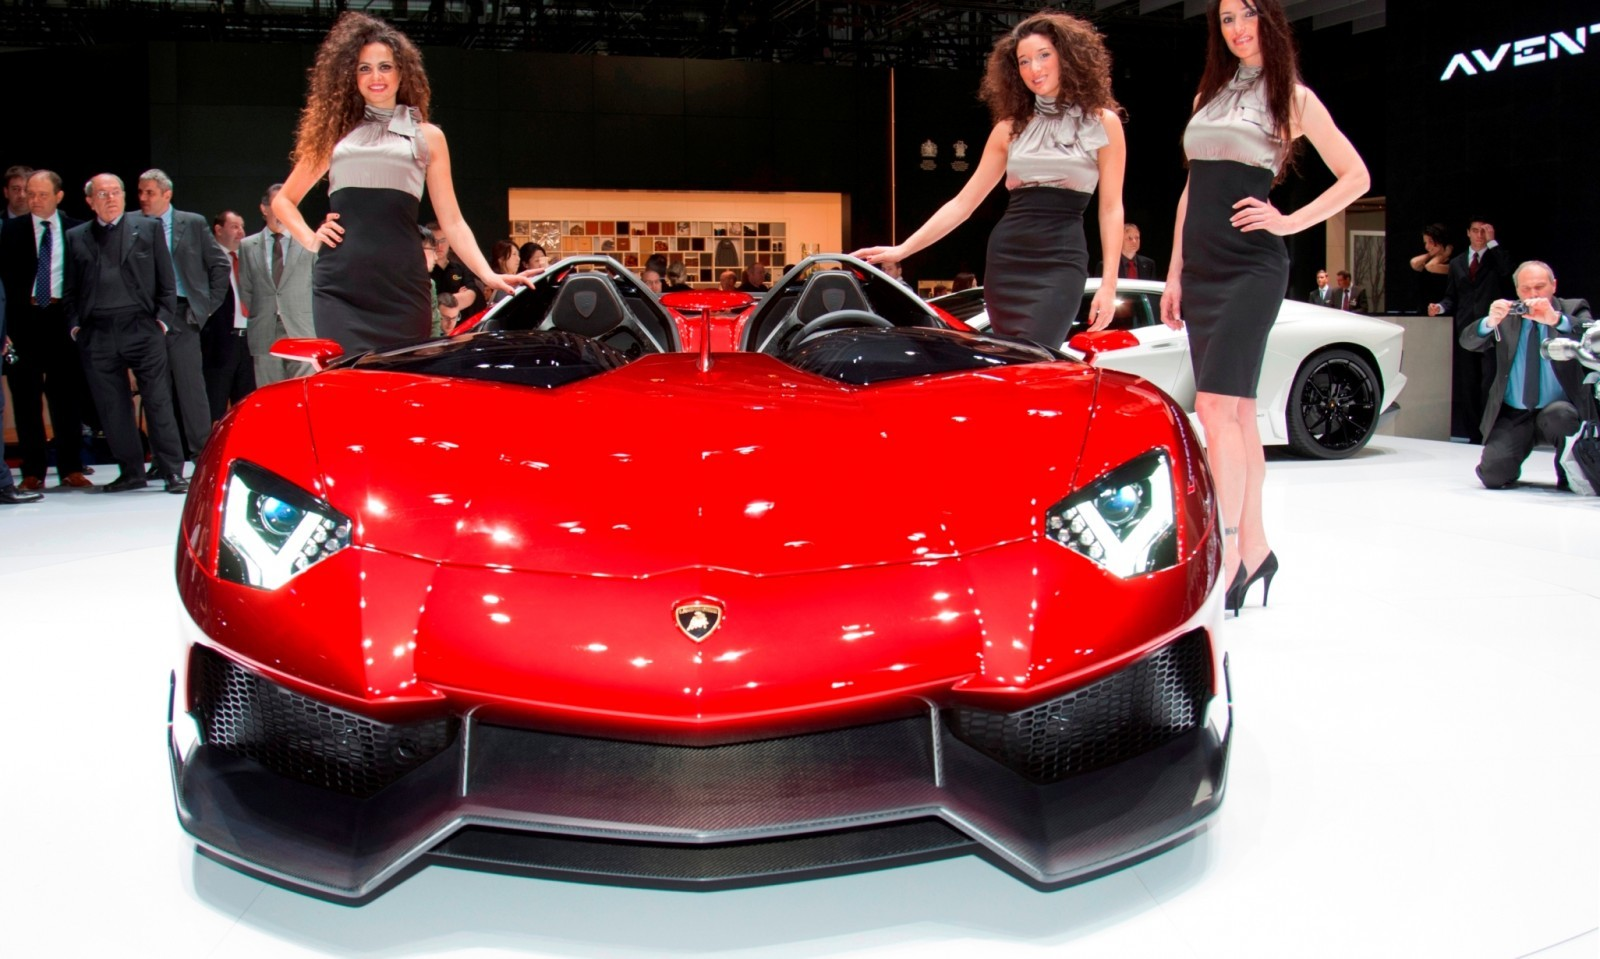 Hypercar Showcase - 2014 Lamborghini Aventador Trumped Only By Aventador J and Aventador Roadster 22